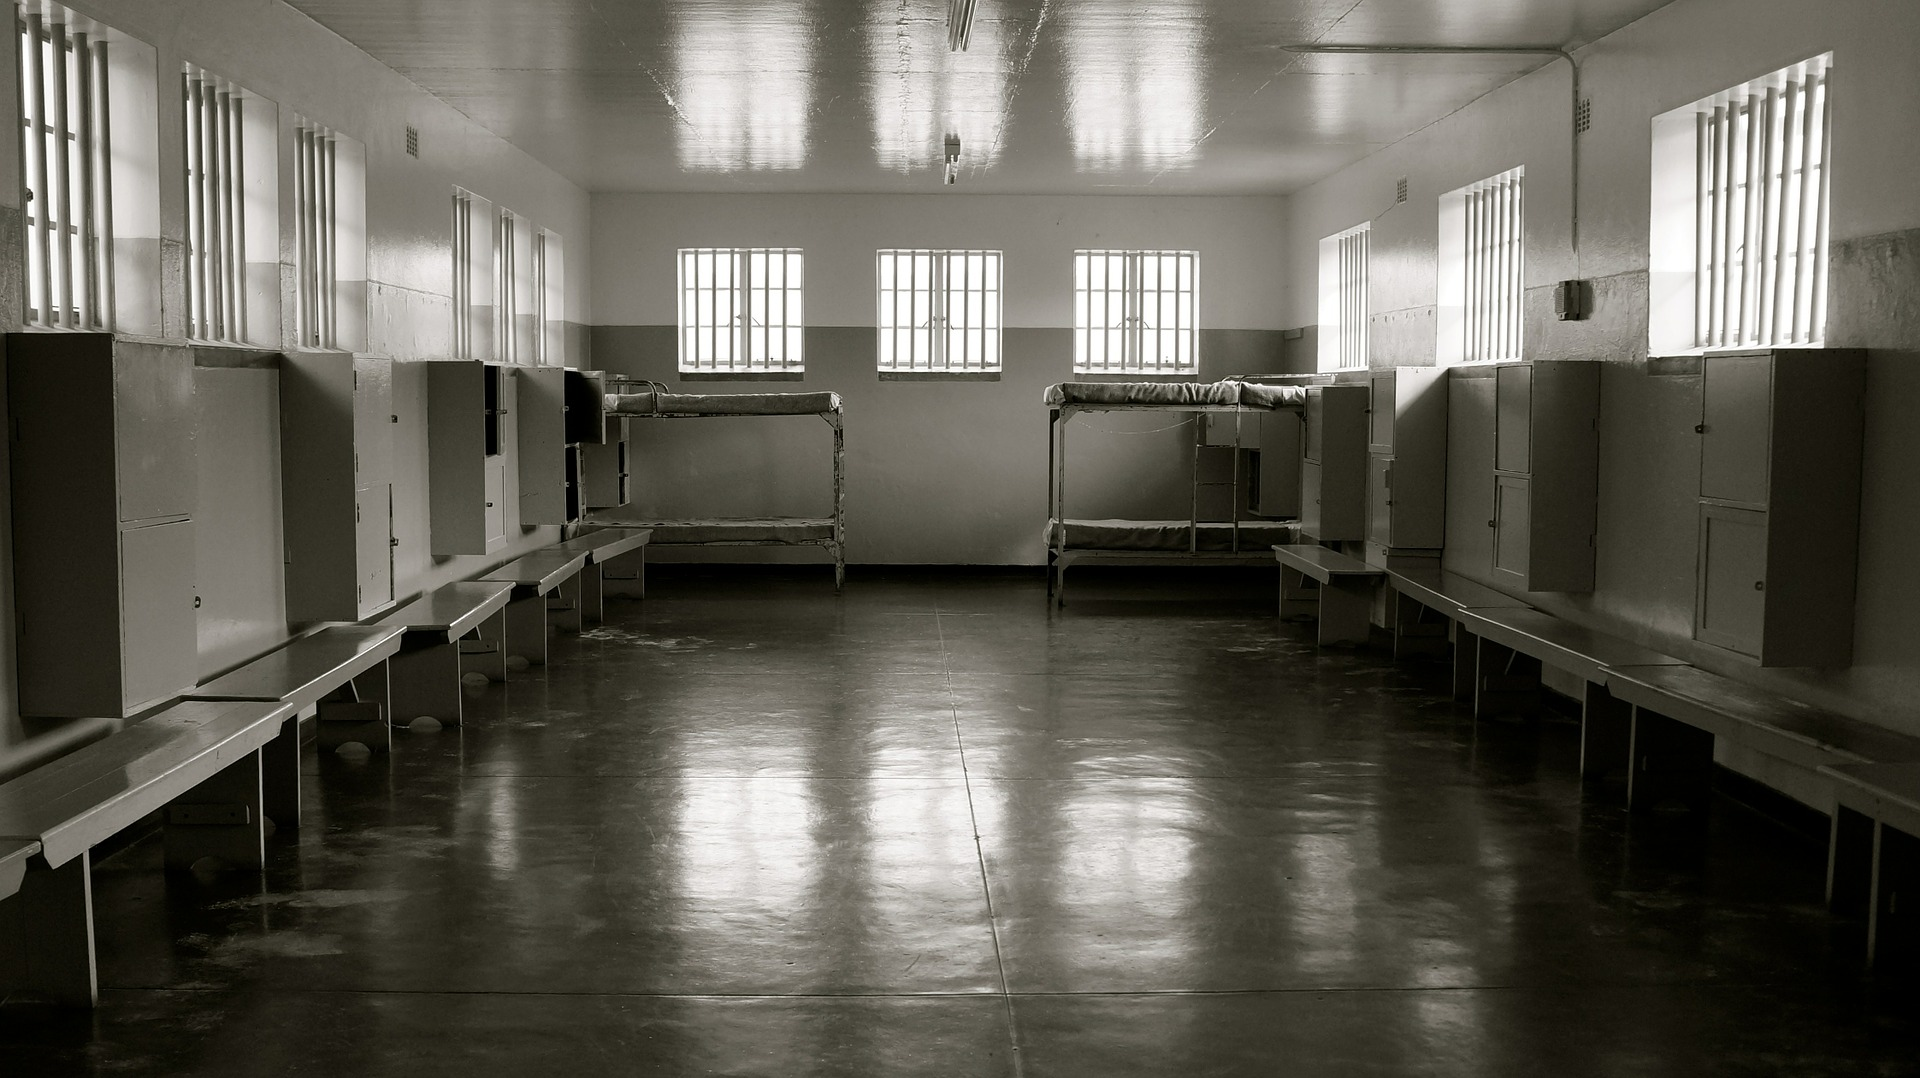 Mandela was in prison initially here at Robben island